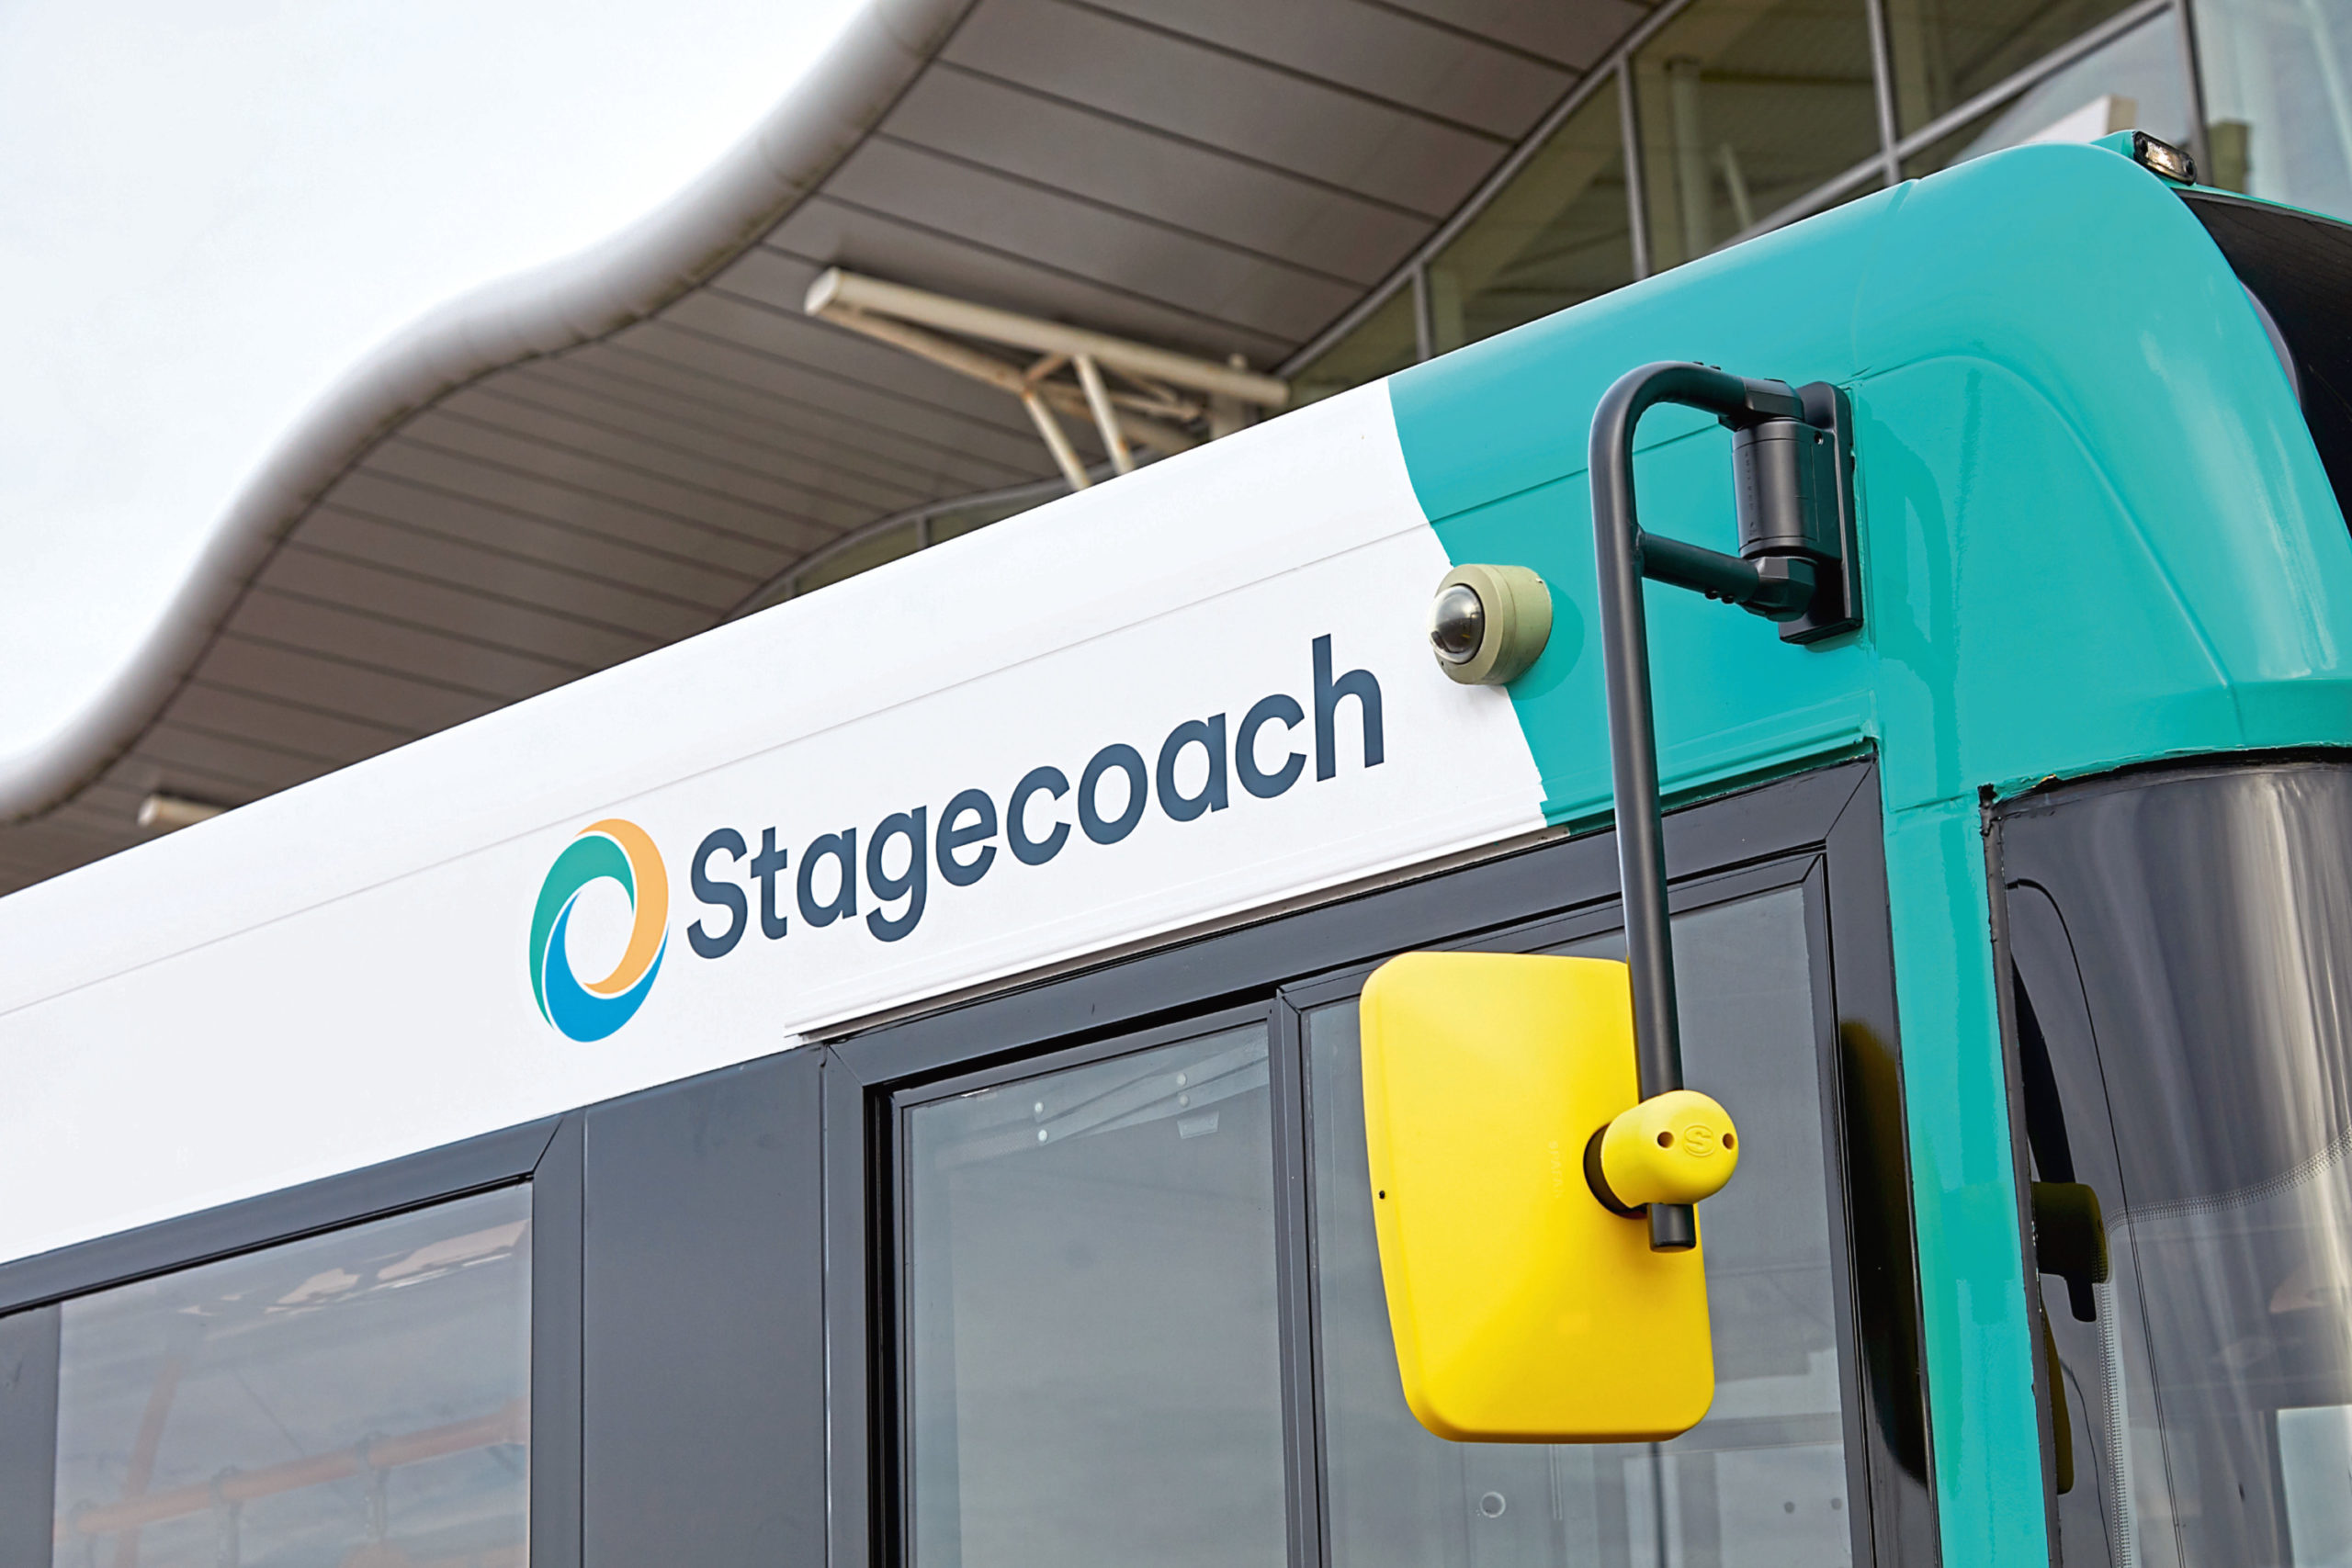 A Stagecoach bus.